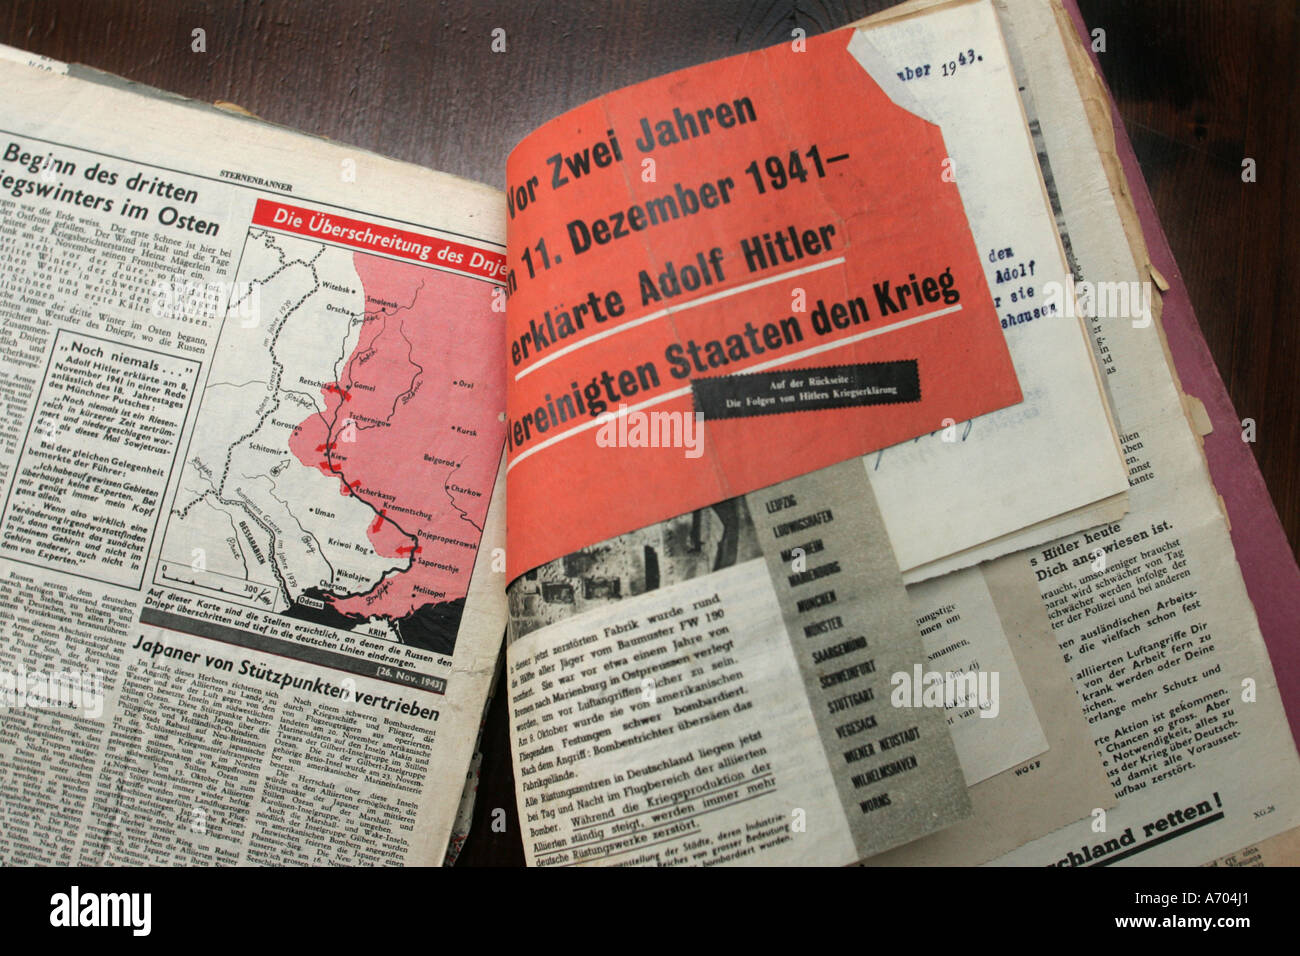 Mannheim, DEU, 17.03.2005, handbill of the Allies dropped off at the end of the 2. World War - Stock Image